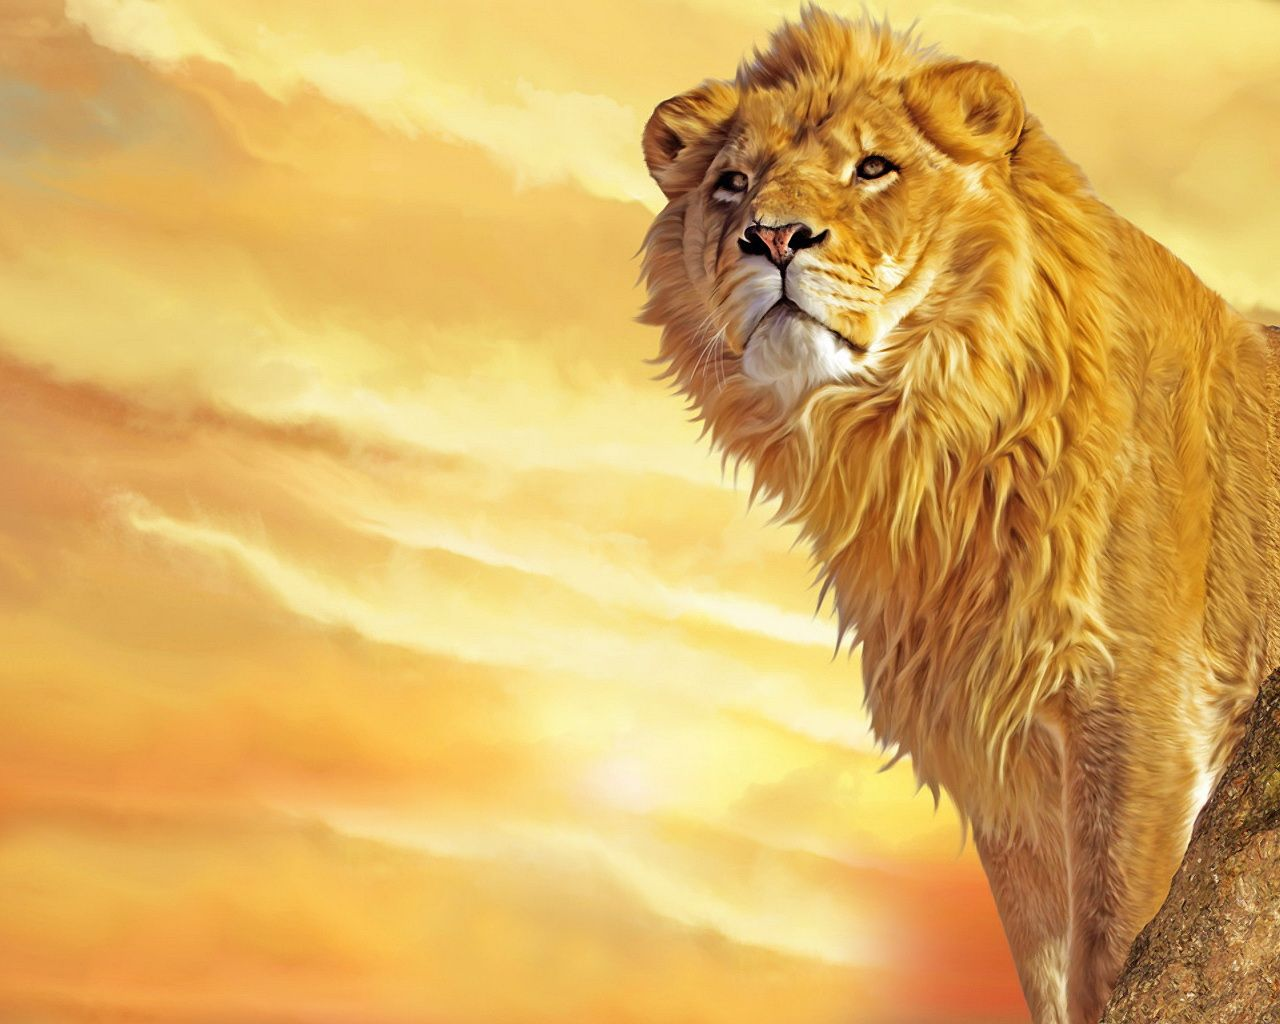 aslan wallpaper | aslan | pinterest | secret code, lions and lion